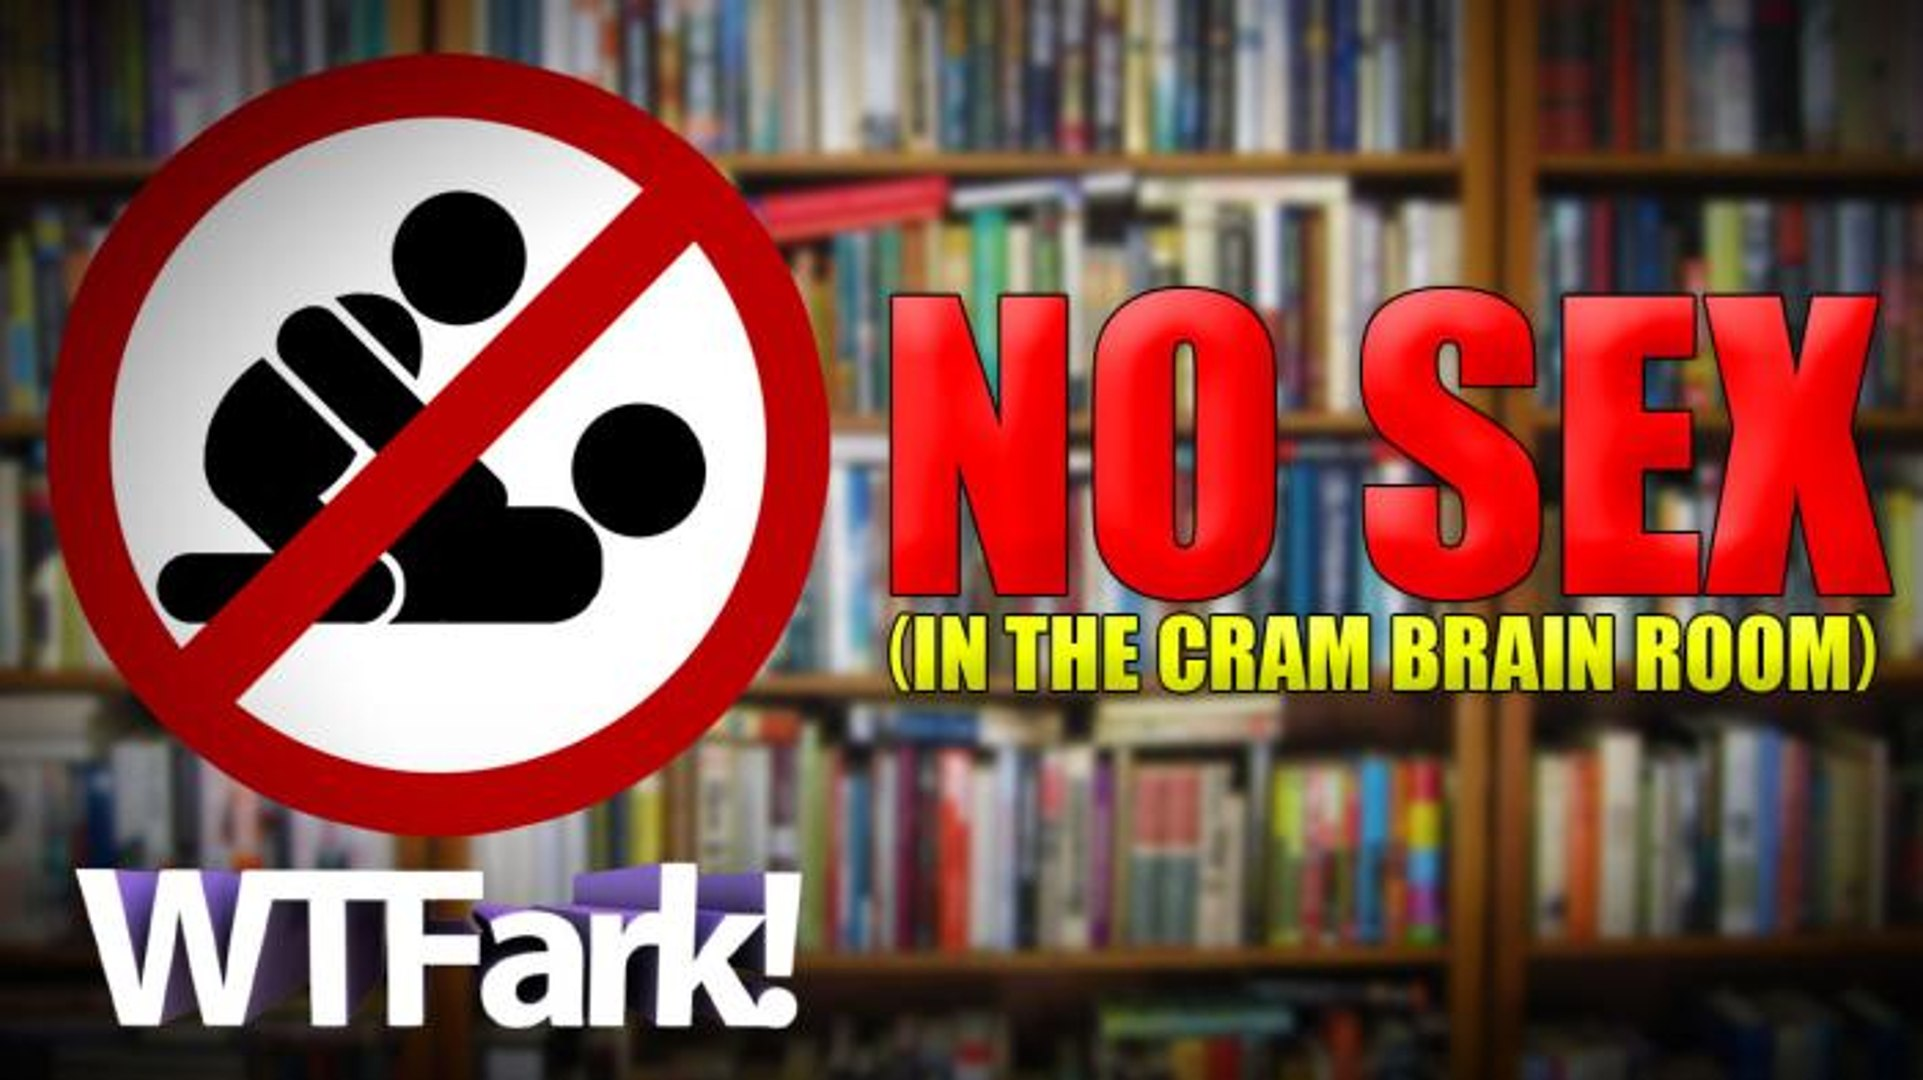 NO SEX IN THE CRAM-BRAIN ROOM: College Student Broadcasts Live Sex Show From Campus Library. And The